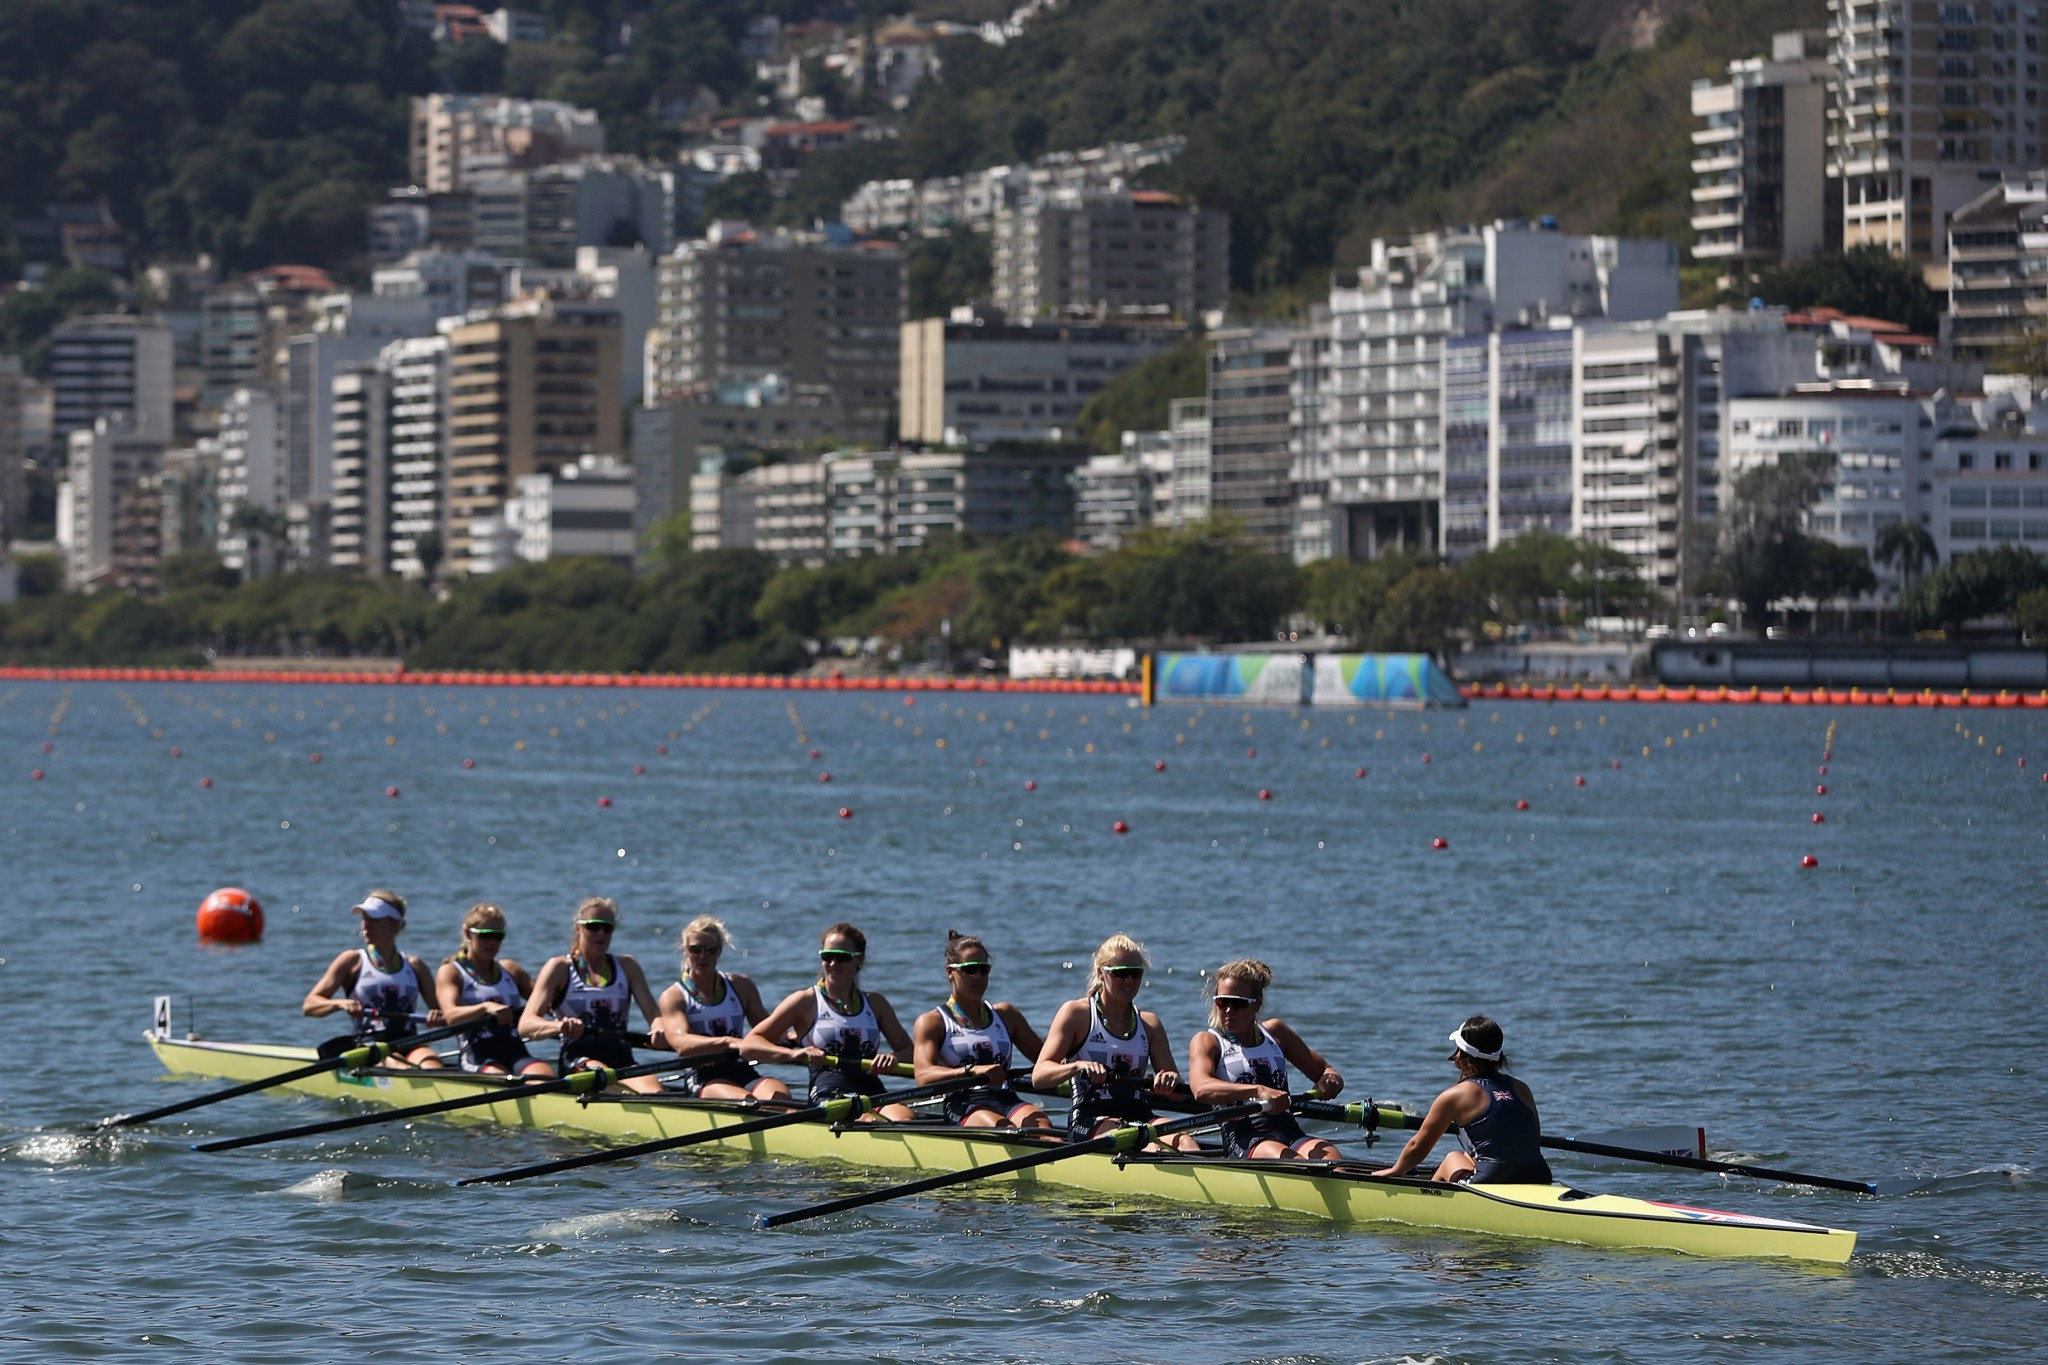 Exclusive: World Rowing got fewer Olympic TV dollars from Rio 2016 than London 2012